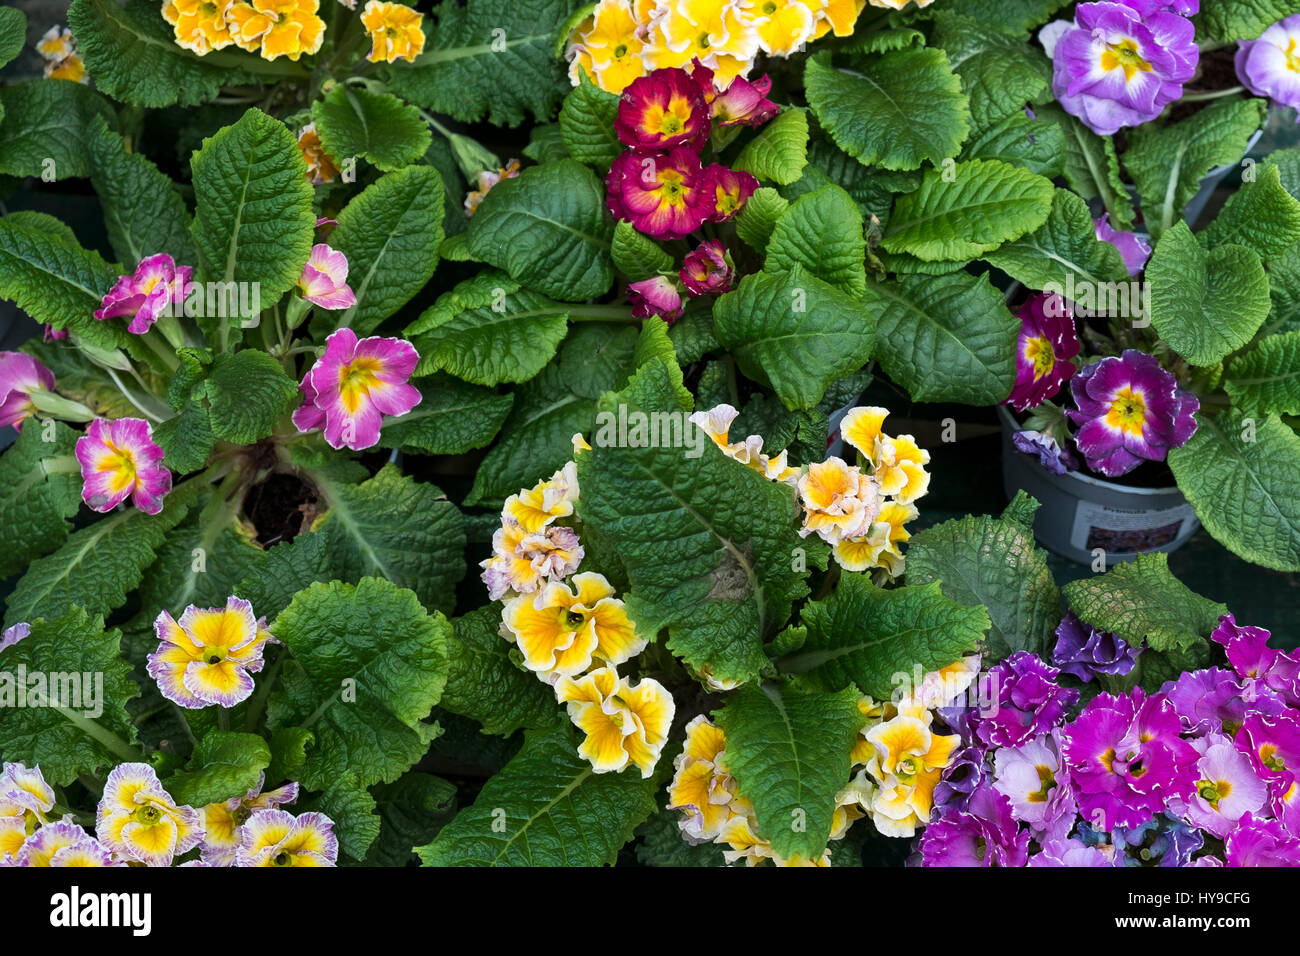 Flower Colourful Colorful Primula Primulas Cultivars Blooms Vibrant Petals Colours Colors Leaves Garden Gardening - Stock Image